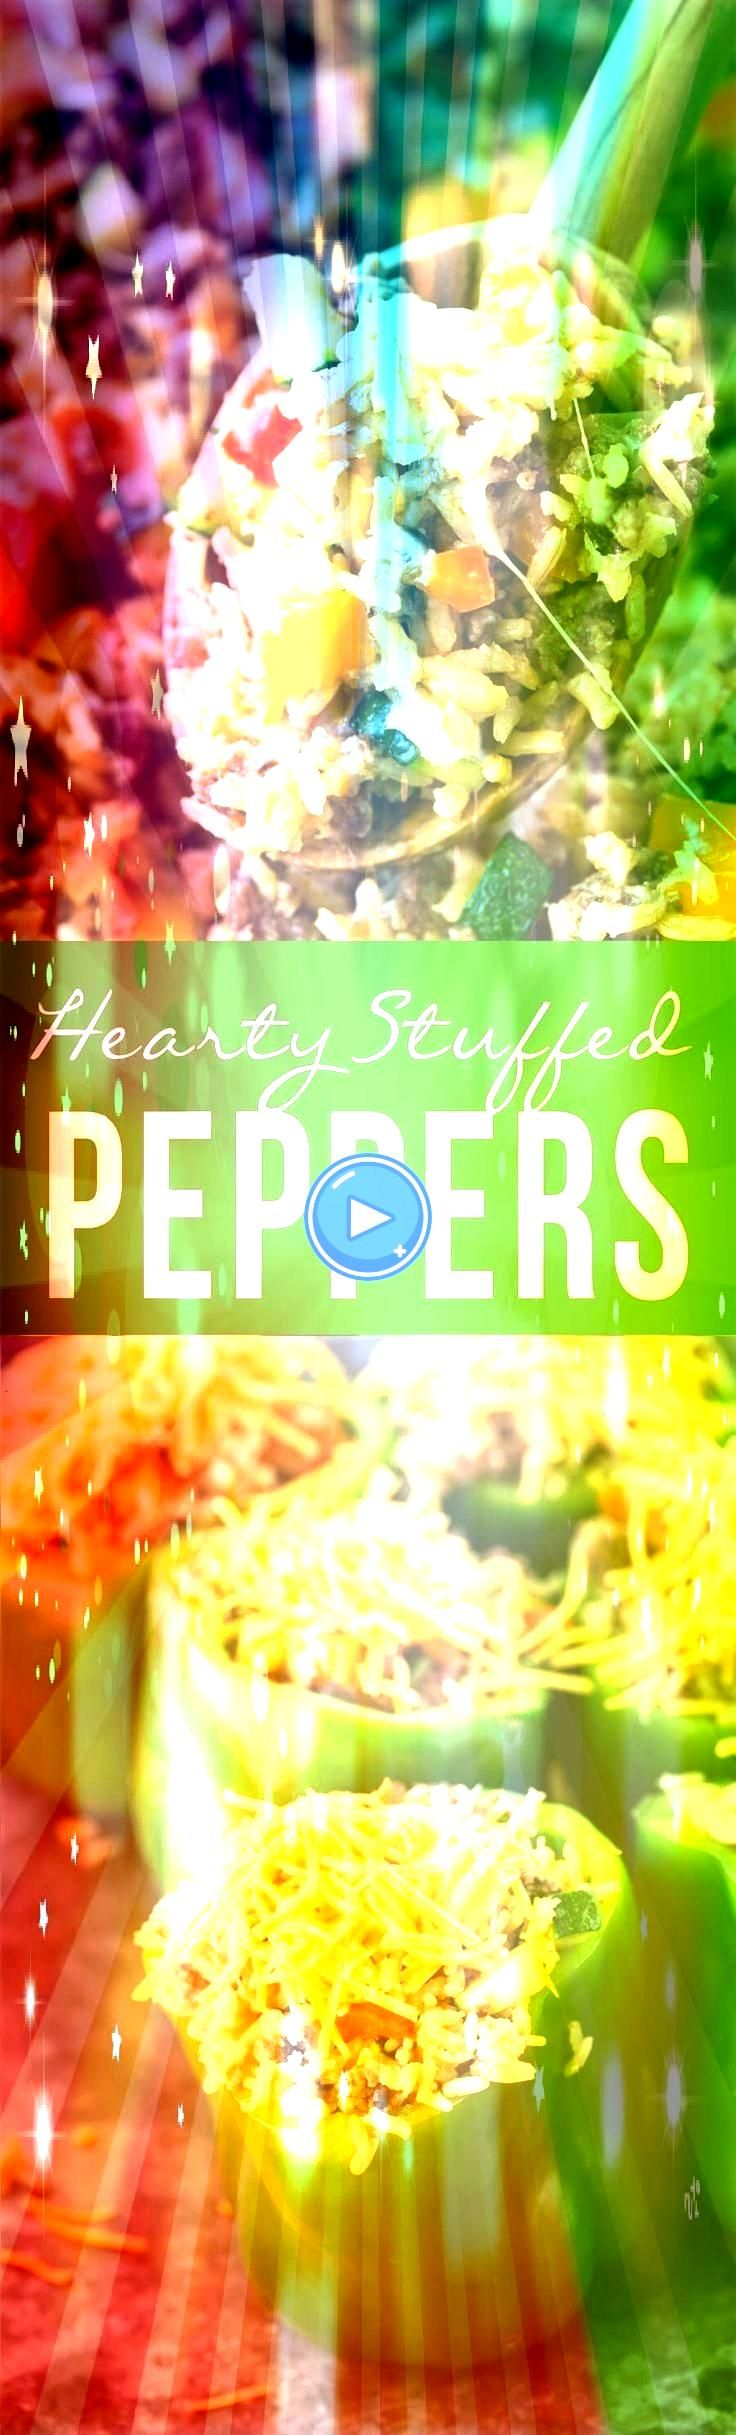 Peppers Omit rice Maybe add chopped tomatoes to stuffing mixt  Recipes  Quinoa Hearty Stuffed Peppers Omit rice Maybe add chopped tomatoes to stuffing mixt  Recipes  Quin...